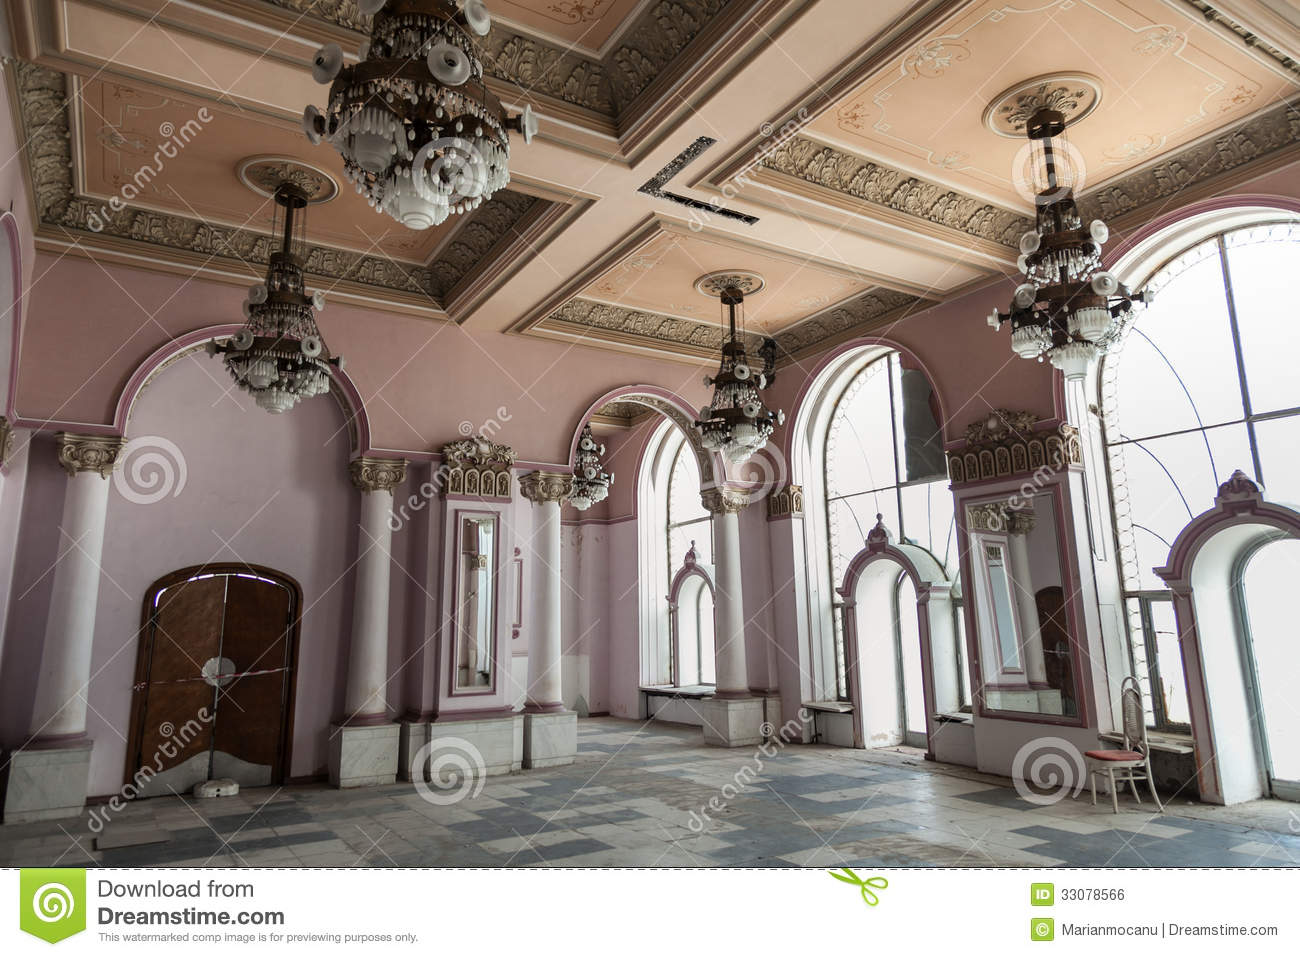 Interior At Old History Casino Building Royalty Free Stock Image  Image 33078566